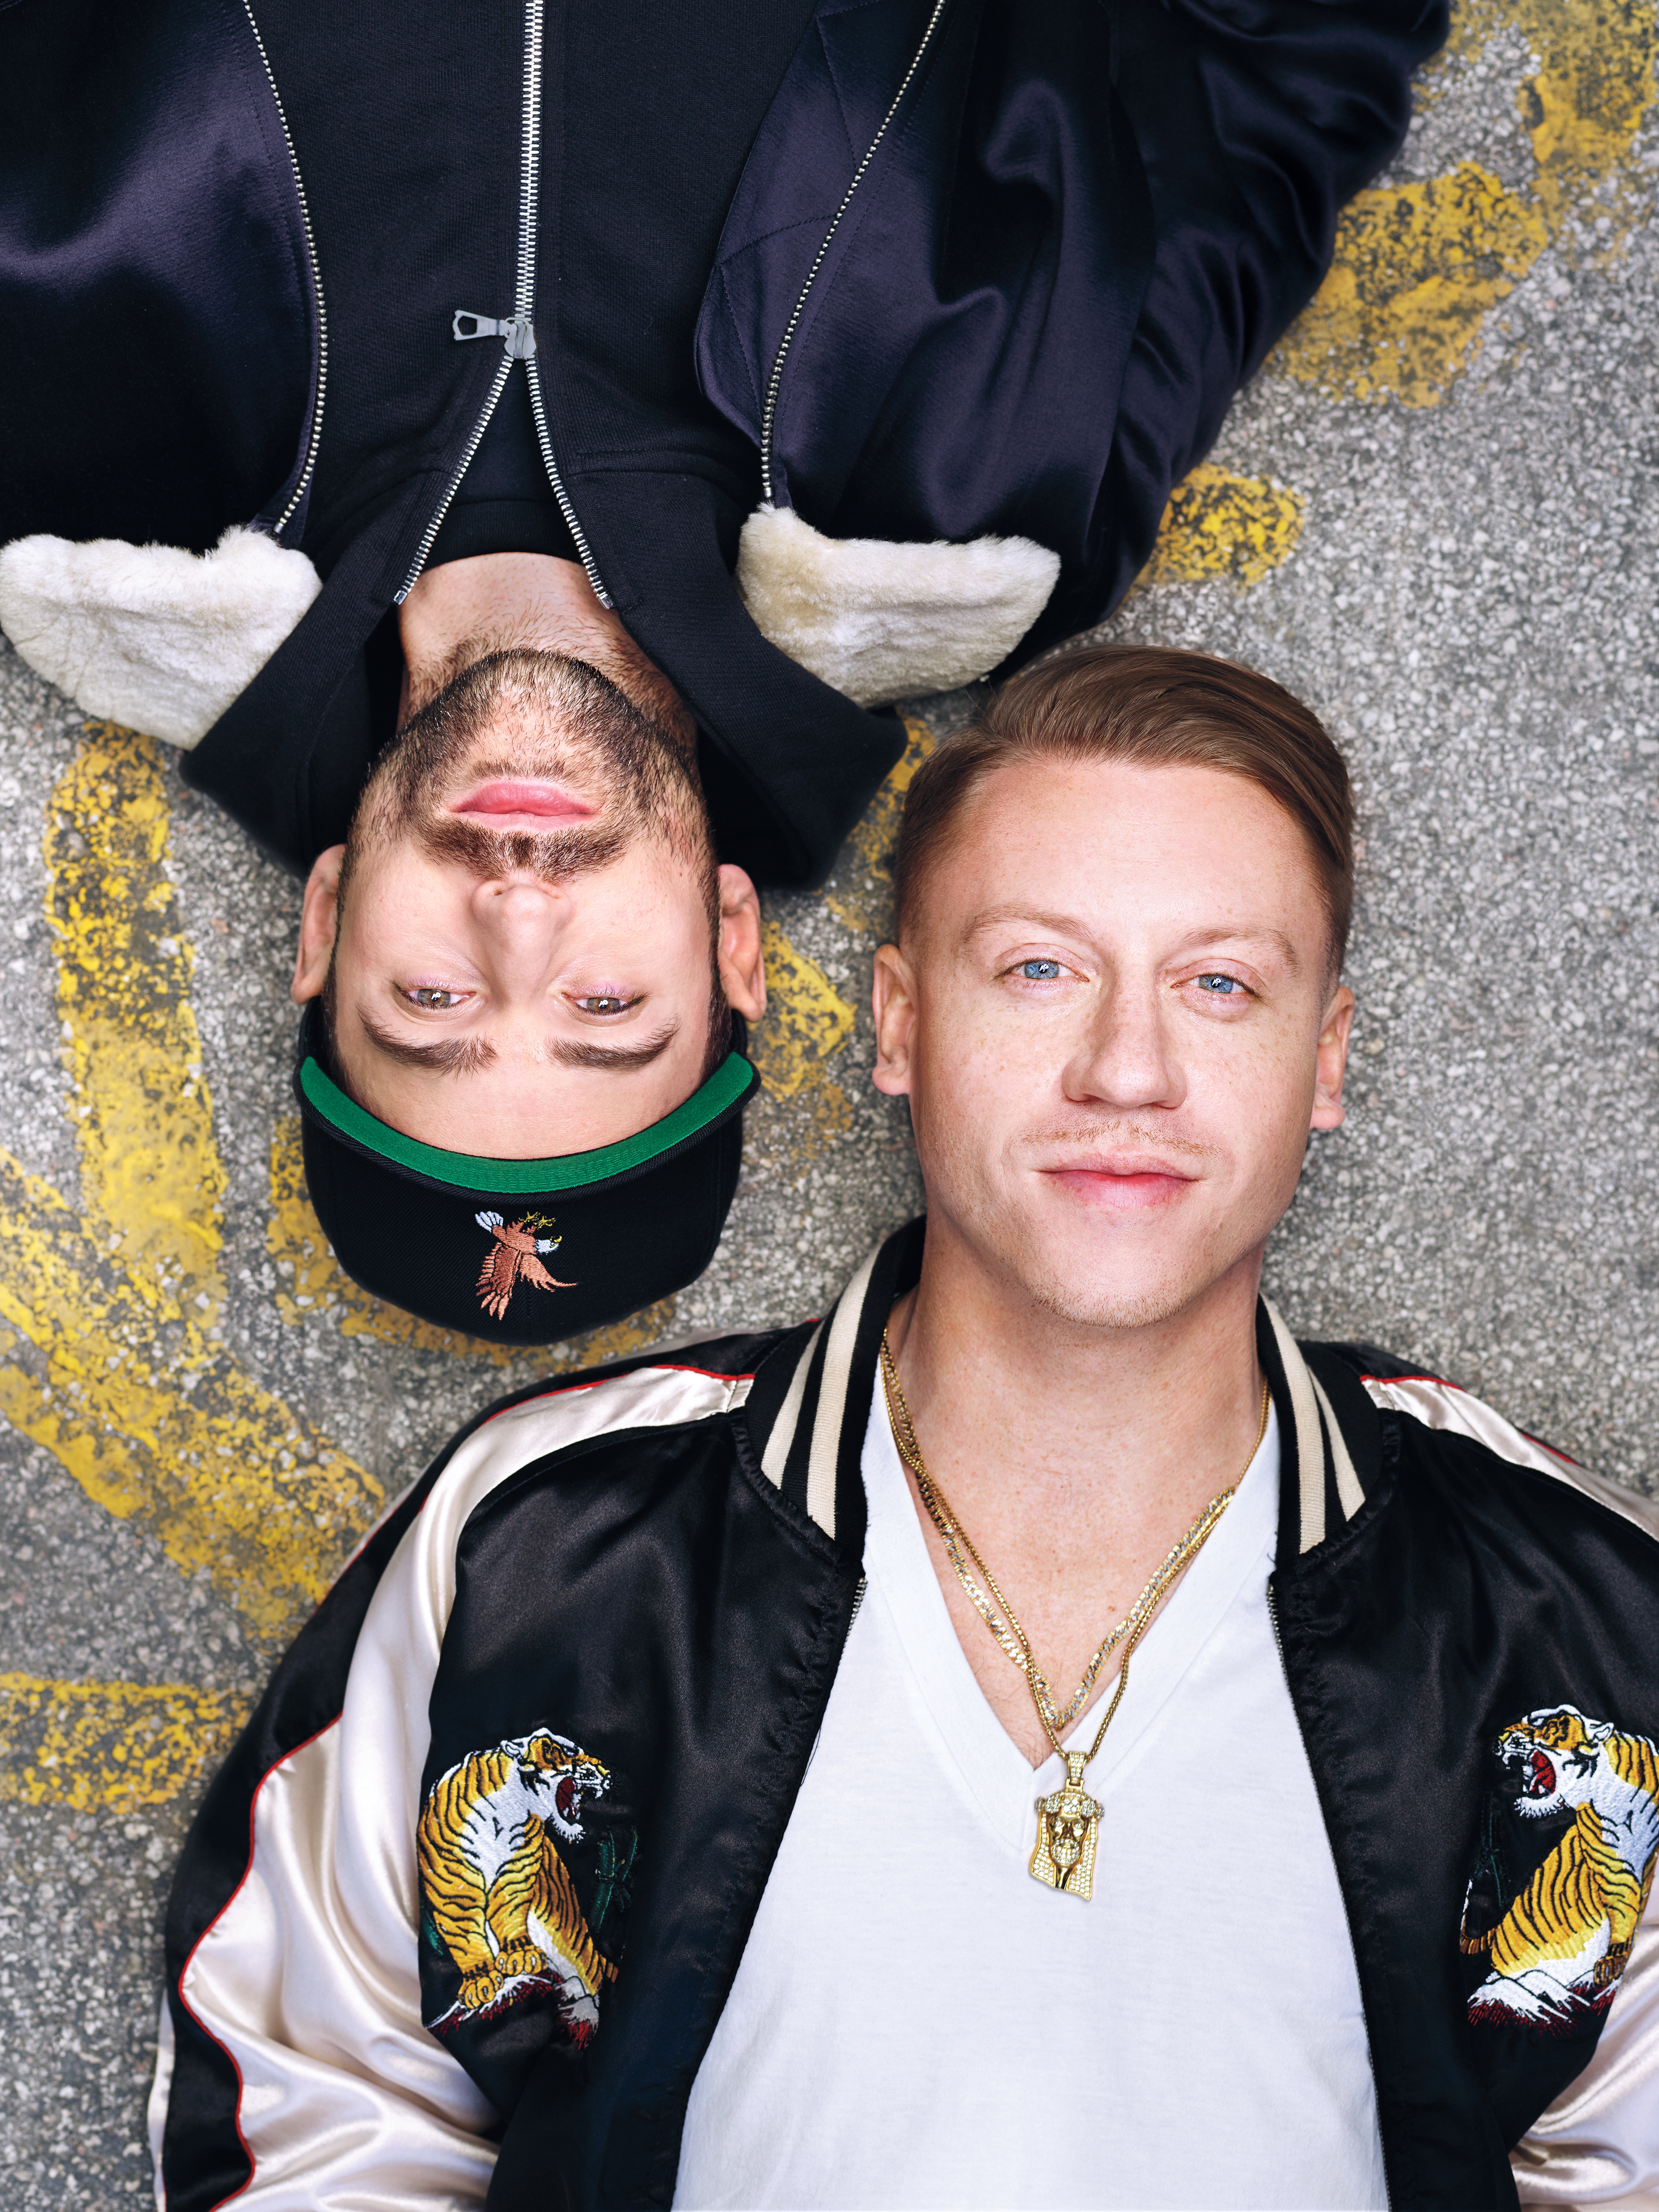 Why Macklemore Risked It All for \'White Privilege II\' – Rolling Stone